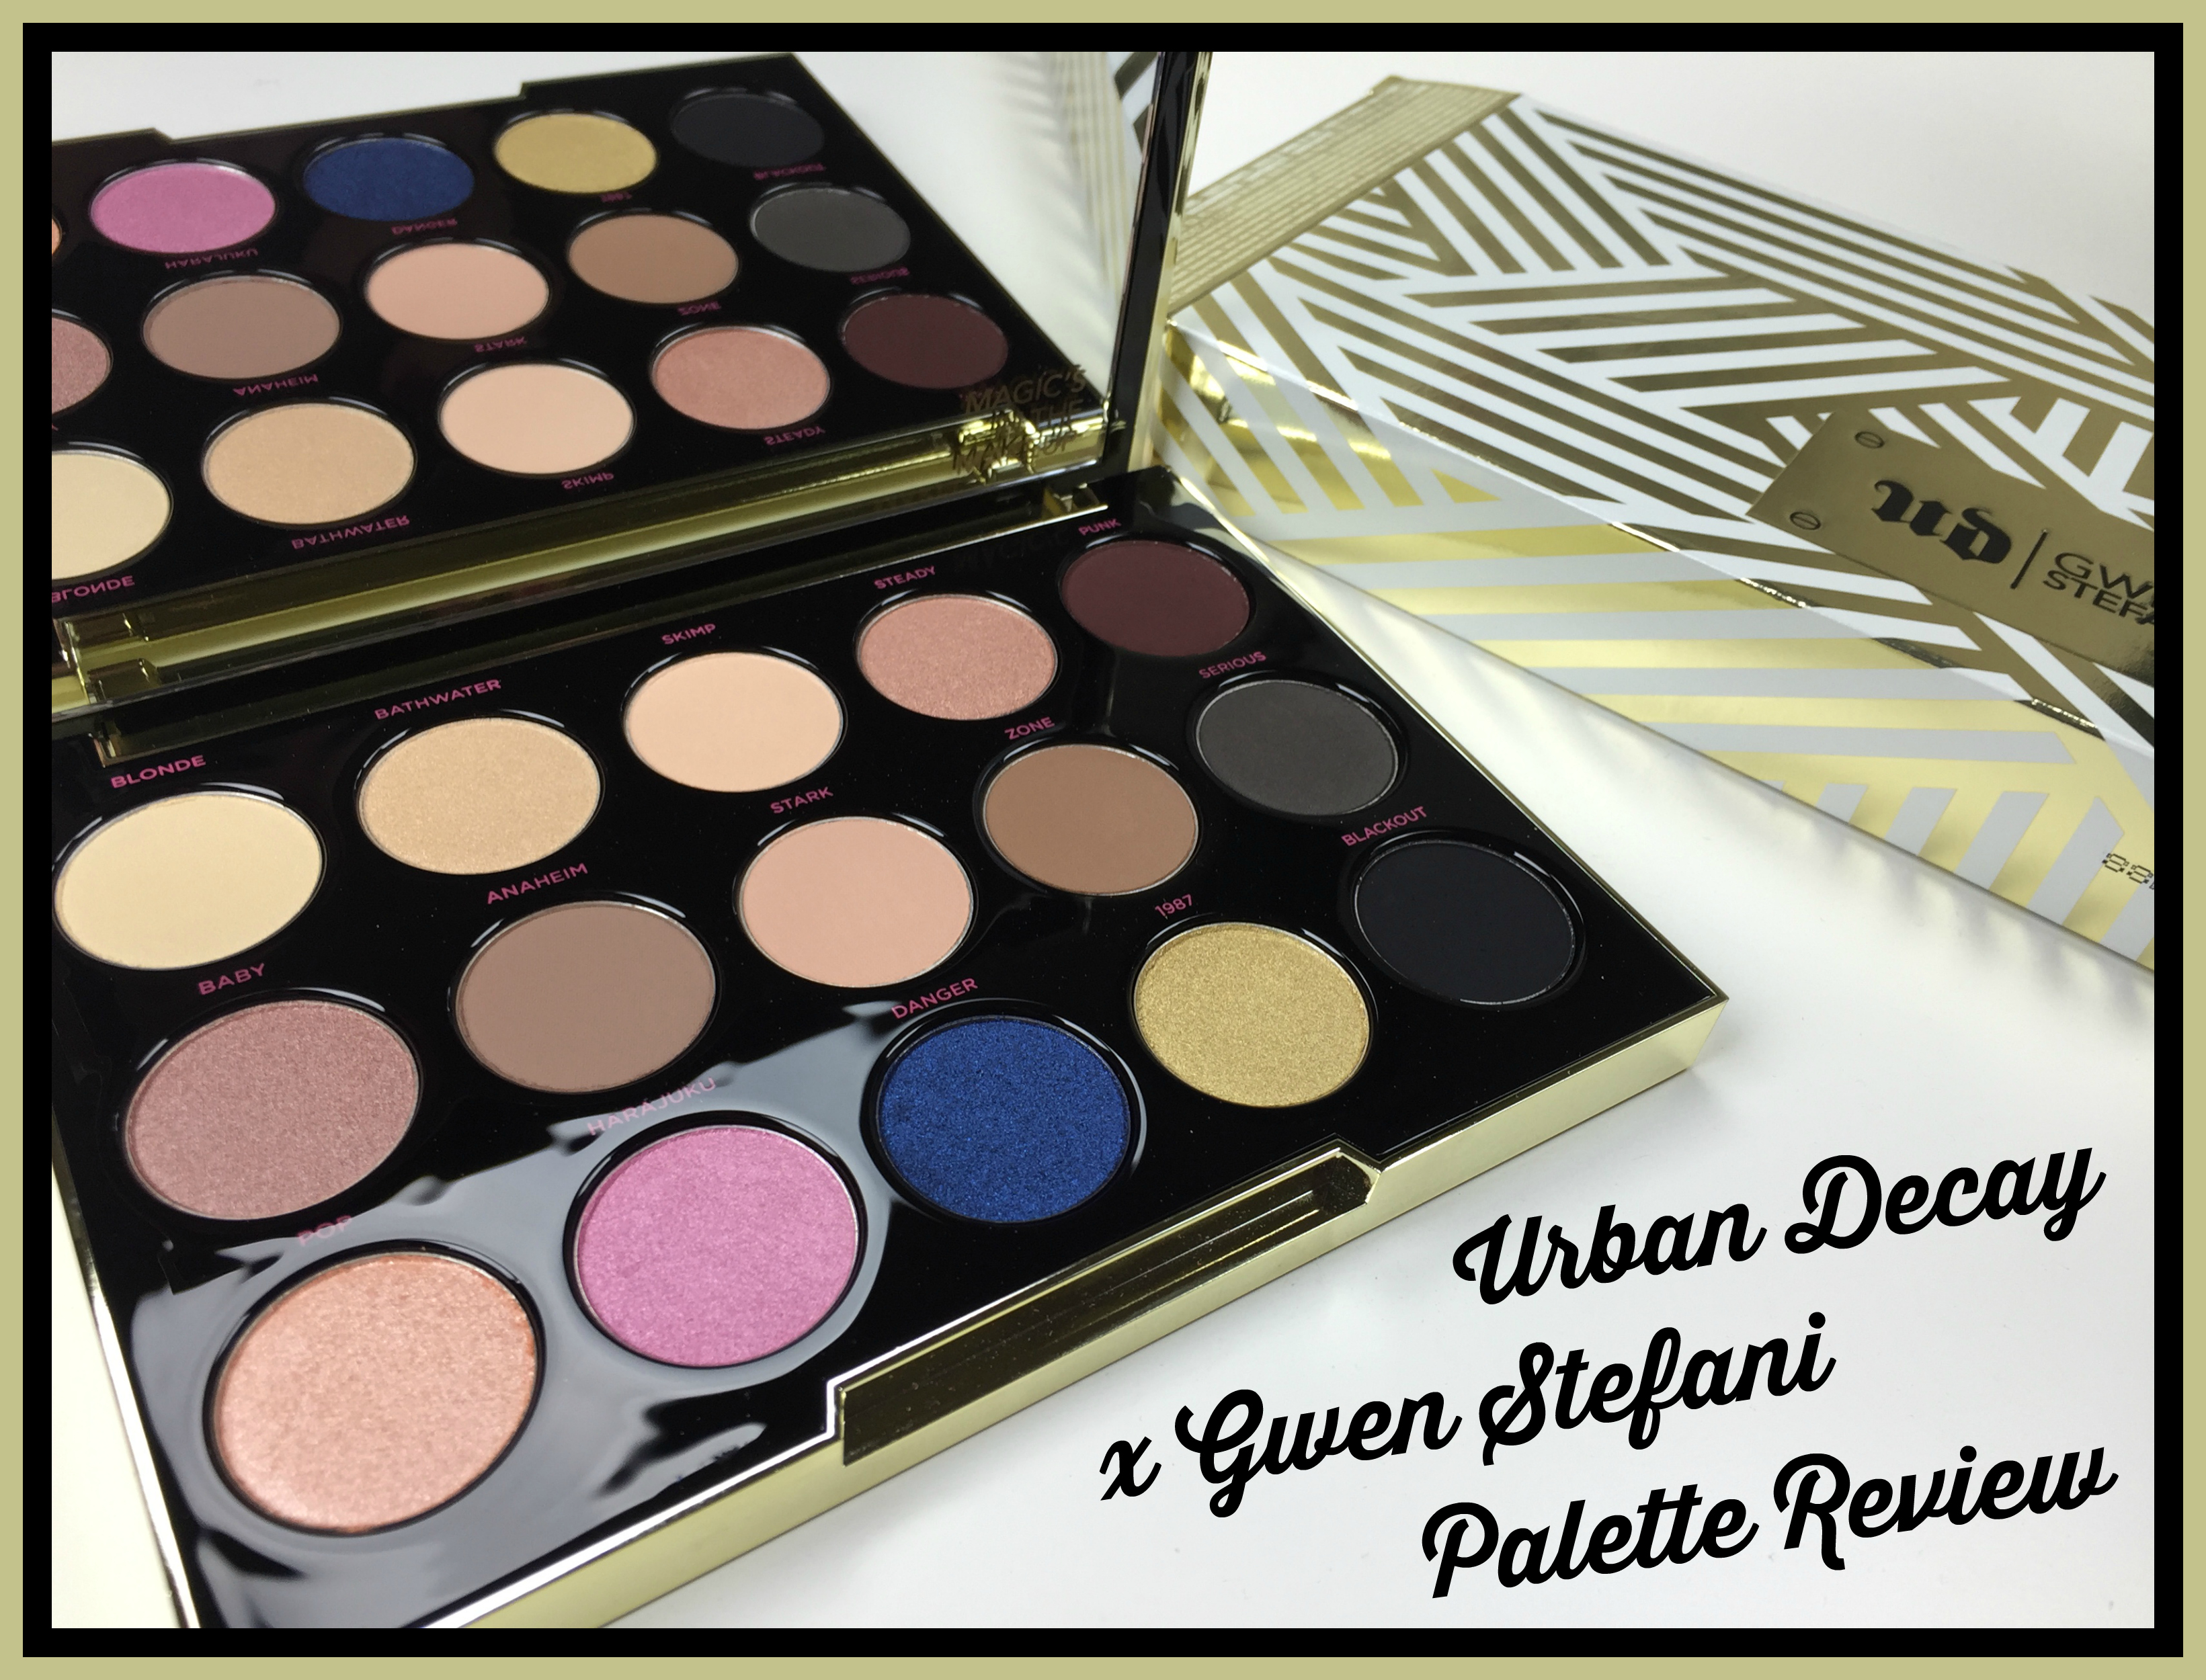 #UrbanDecay #GwenStefani #Makeup #Beauty #BBloggers